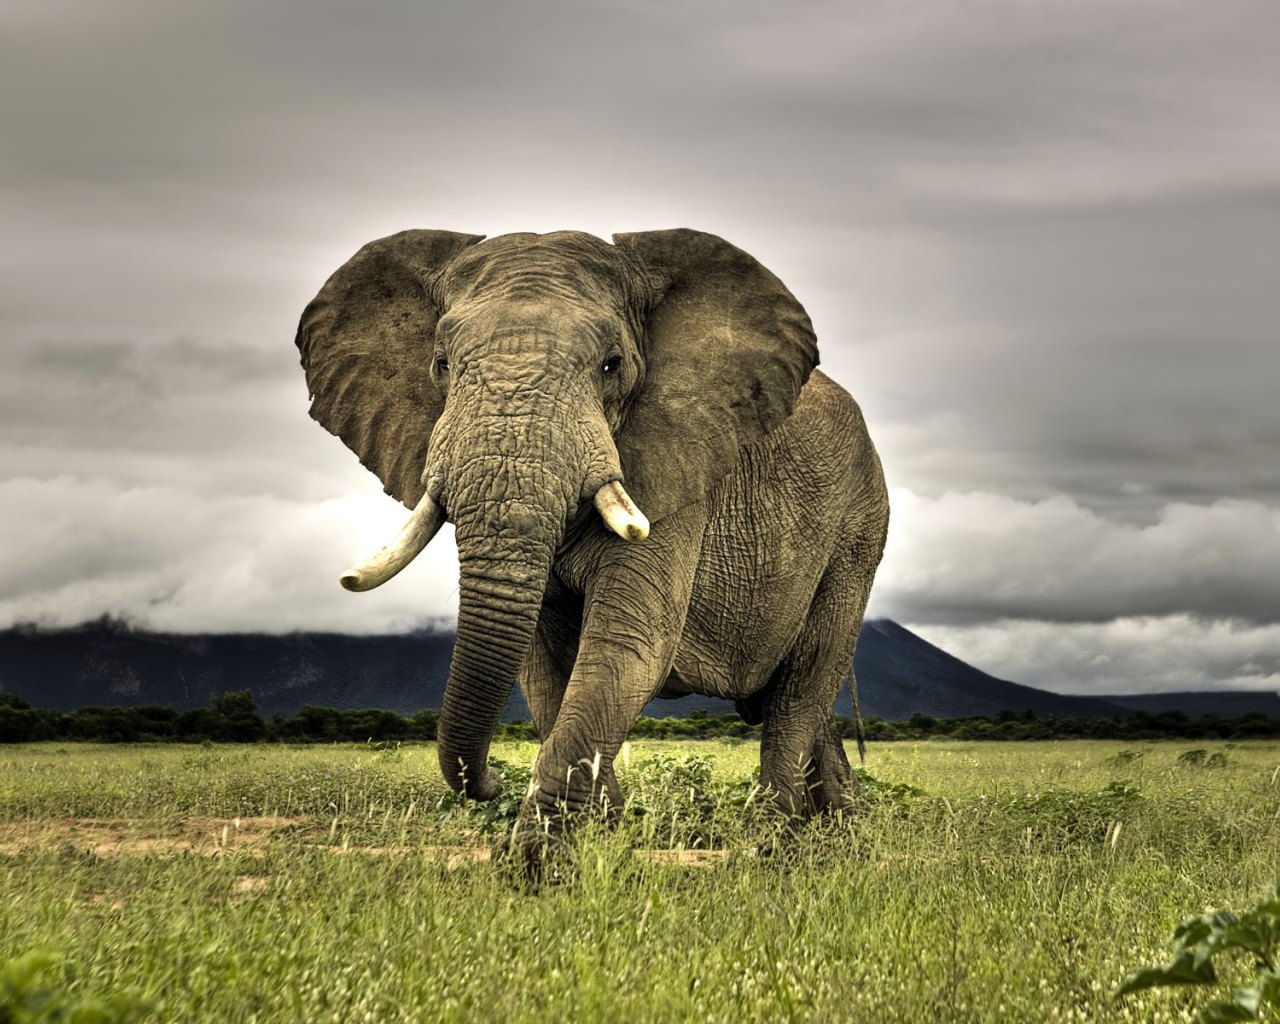 Elephant Animal Safaris on animals rated by intelligence